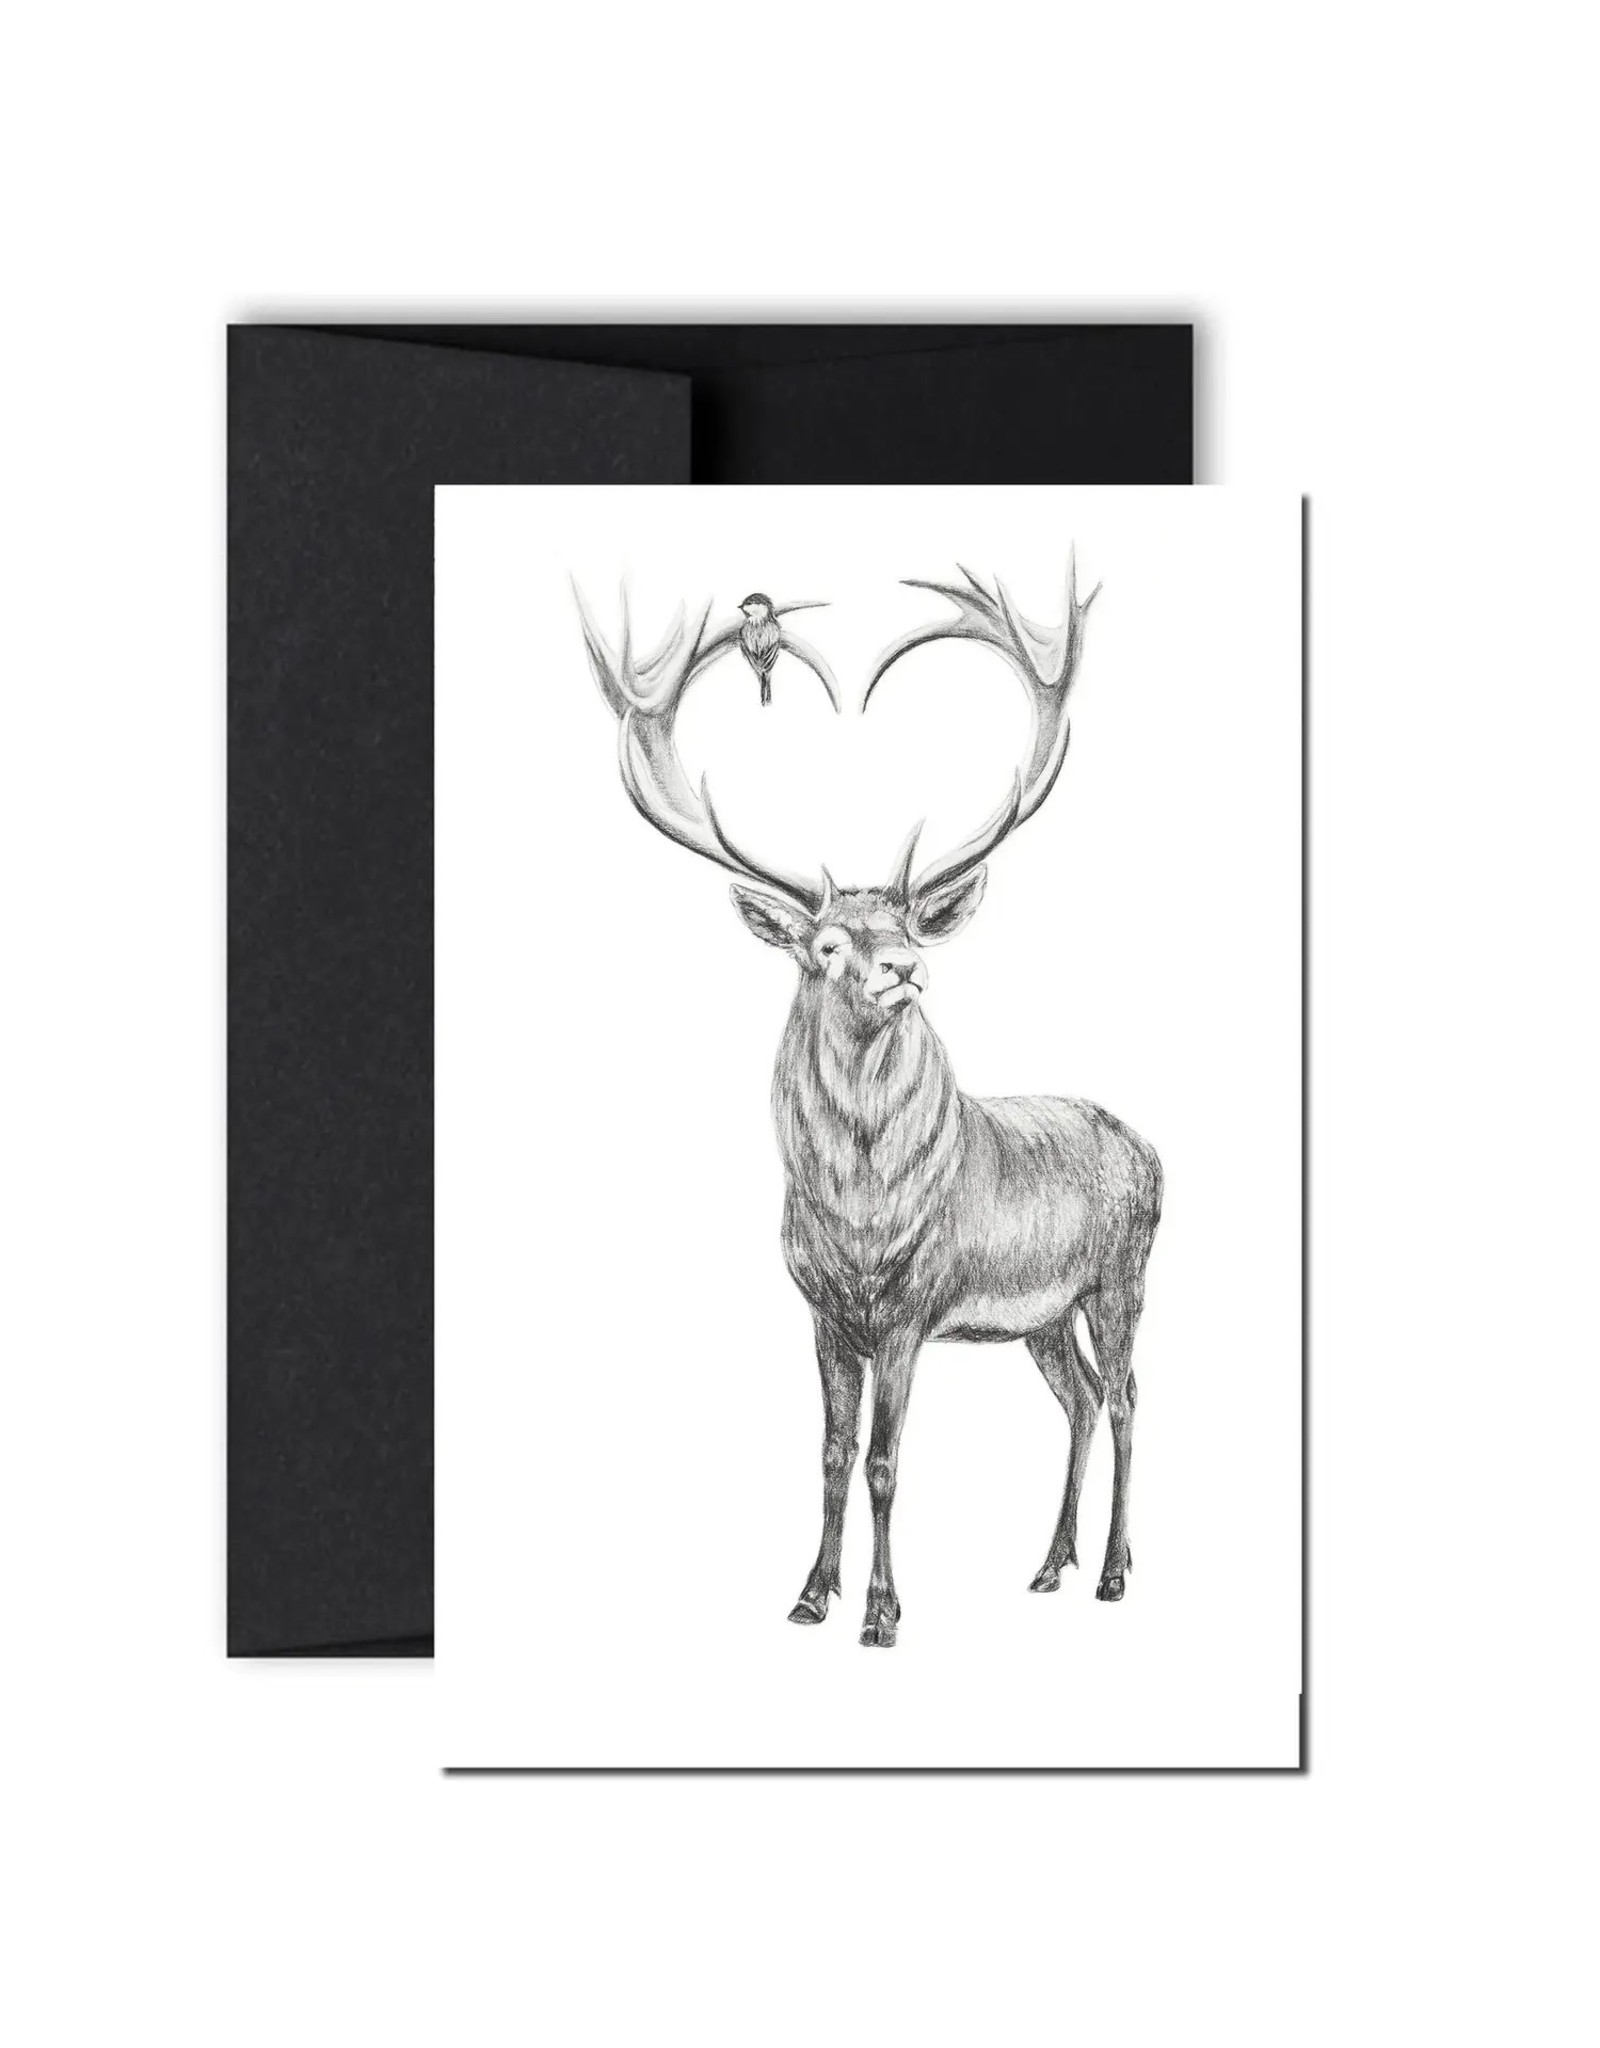 Le Nid - Deer with Heart Shaped Antlers Greeting Card